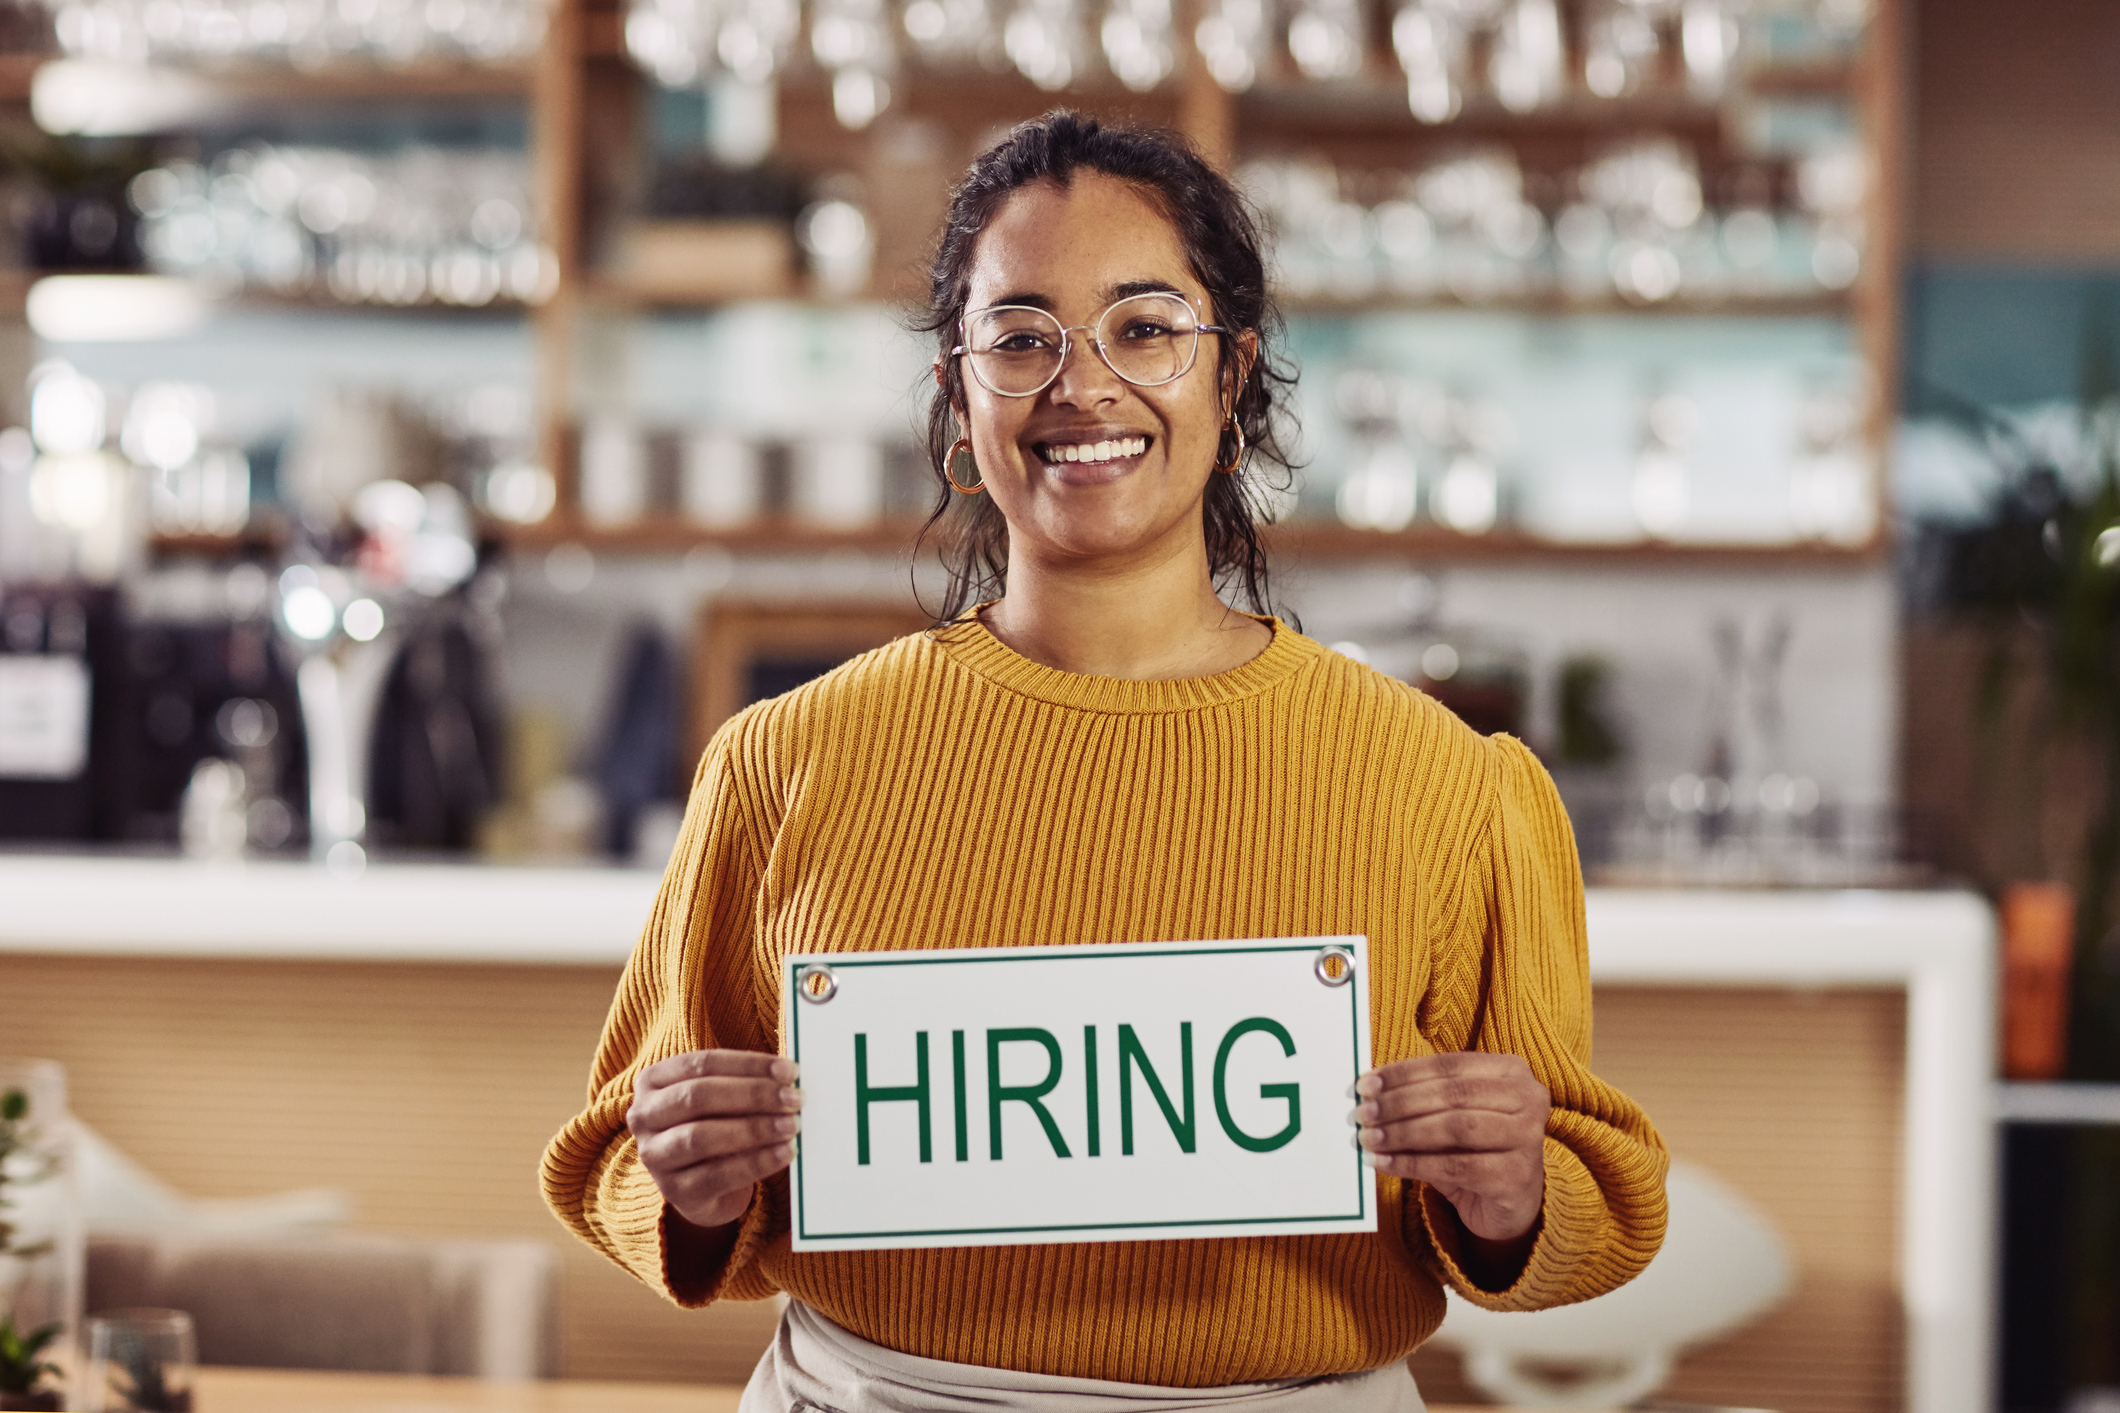 Help Wanted: 4 Recruiting Ideas for Restaurants & Other Service-Industry Businesses